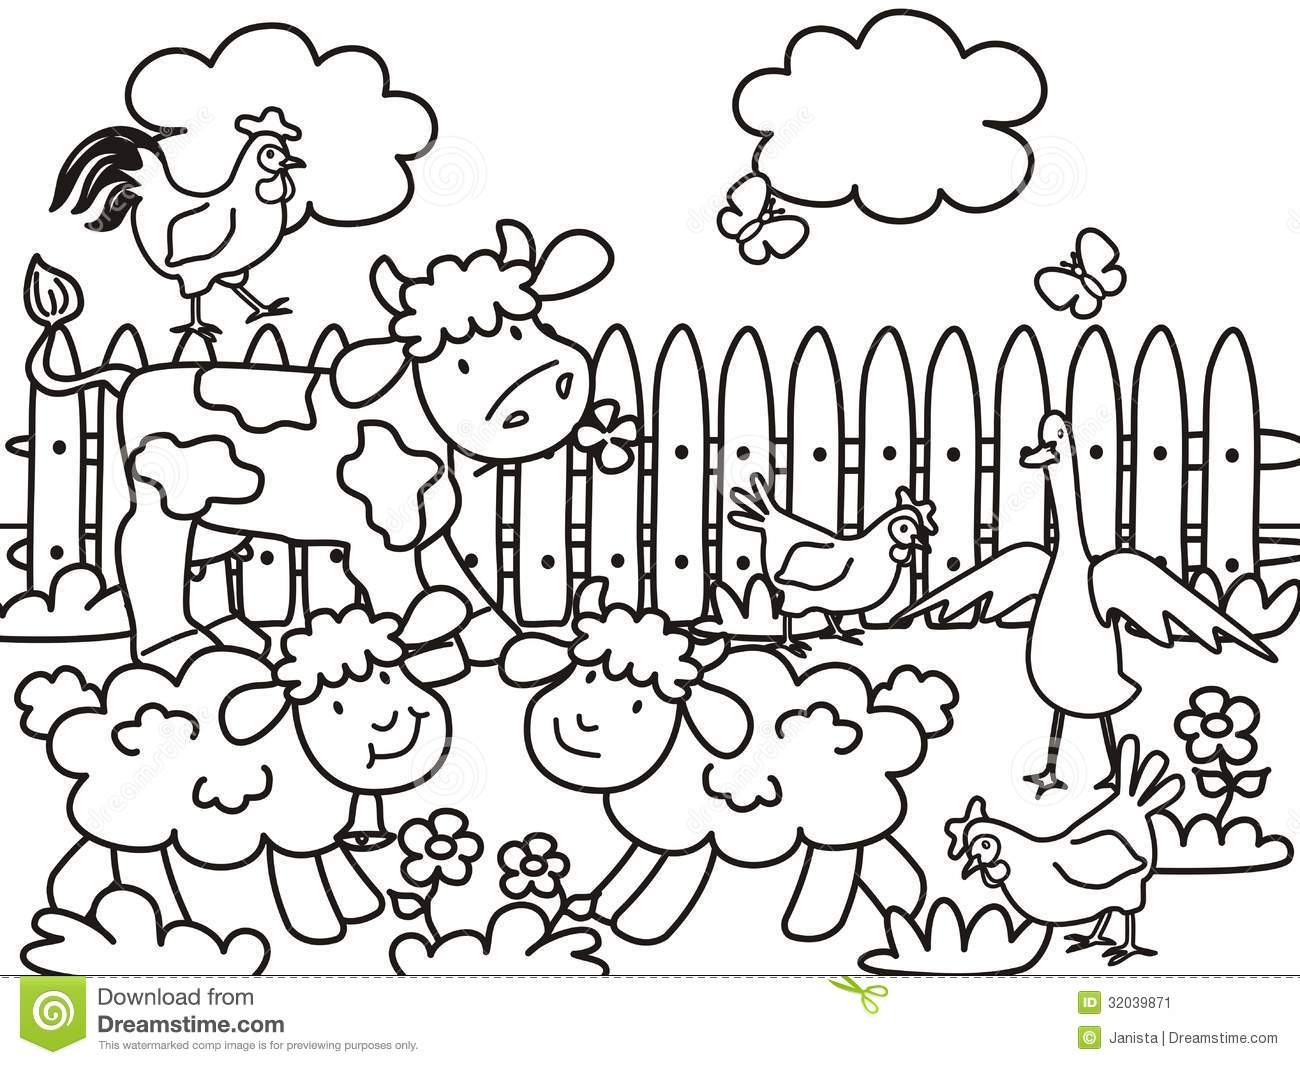 Coloring books for children. Life on the farm - animals in the meadow.